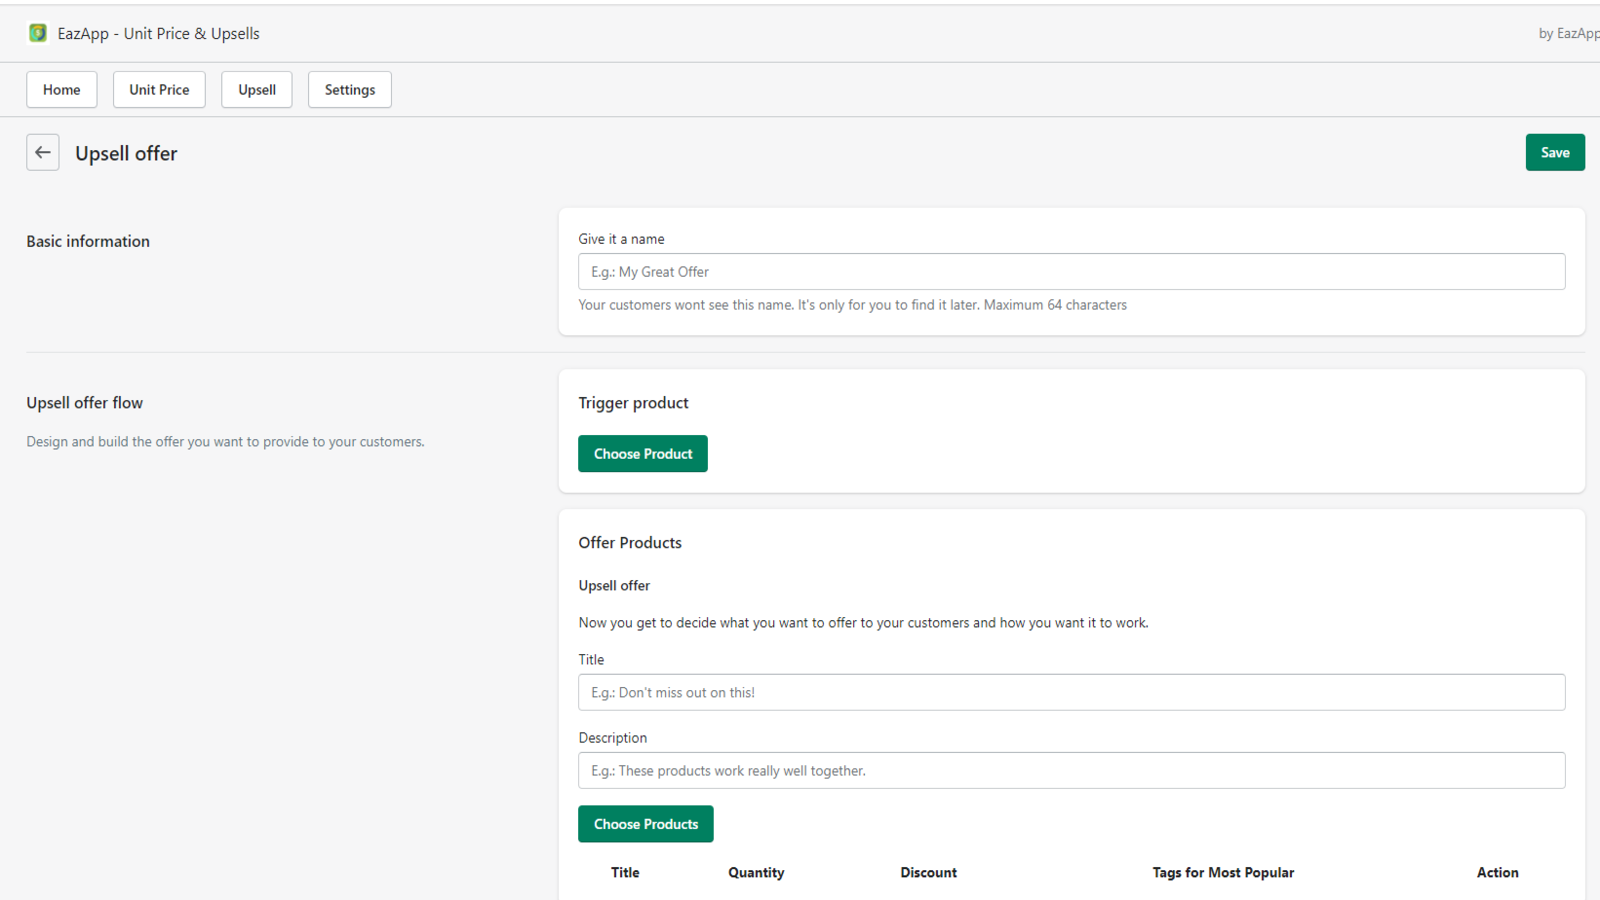 You can select to add upsells or bulk offers on each product